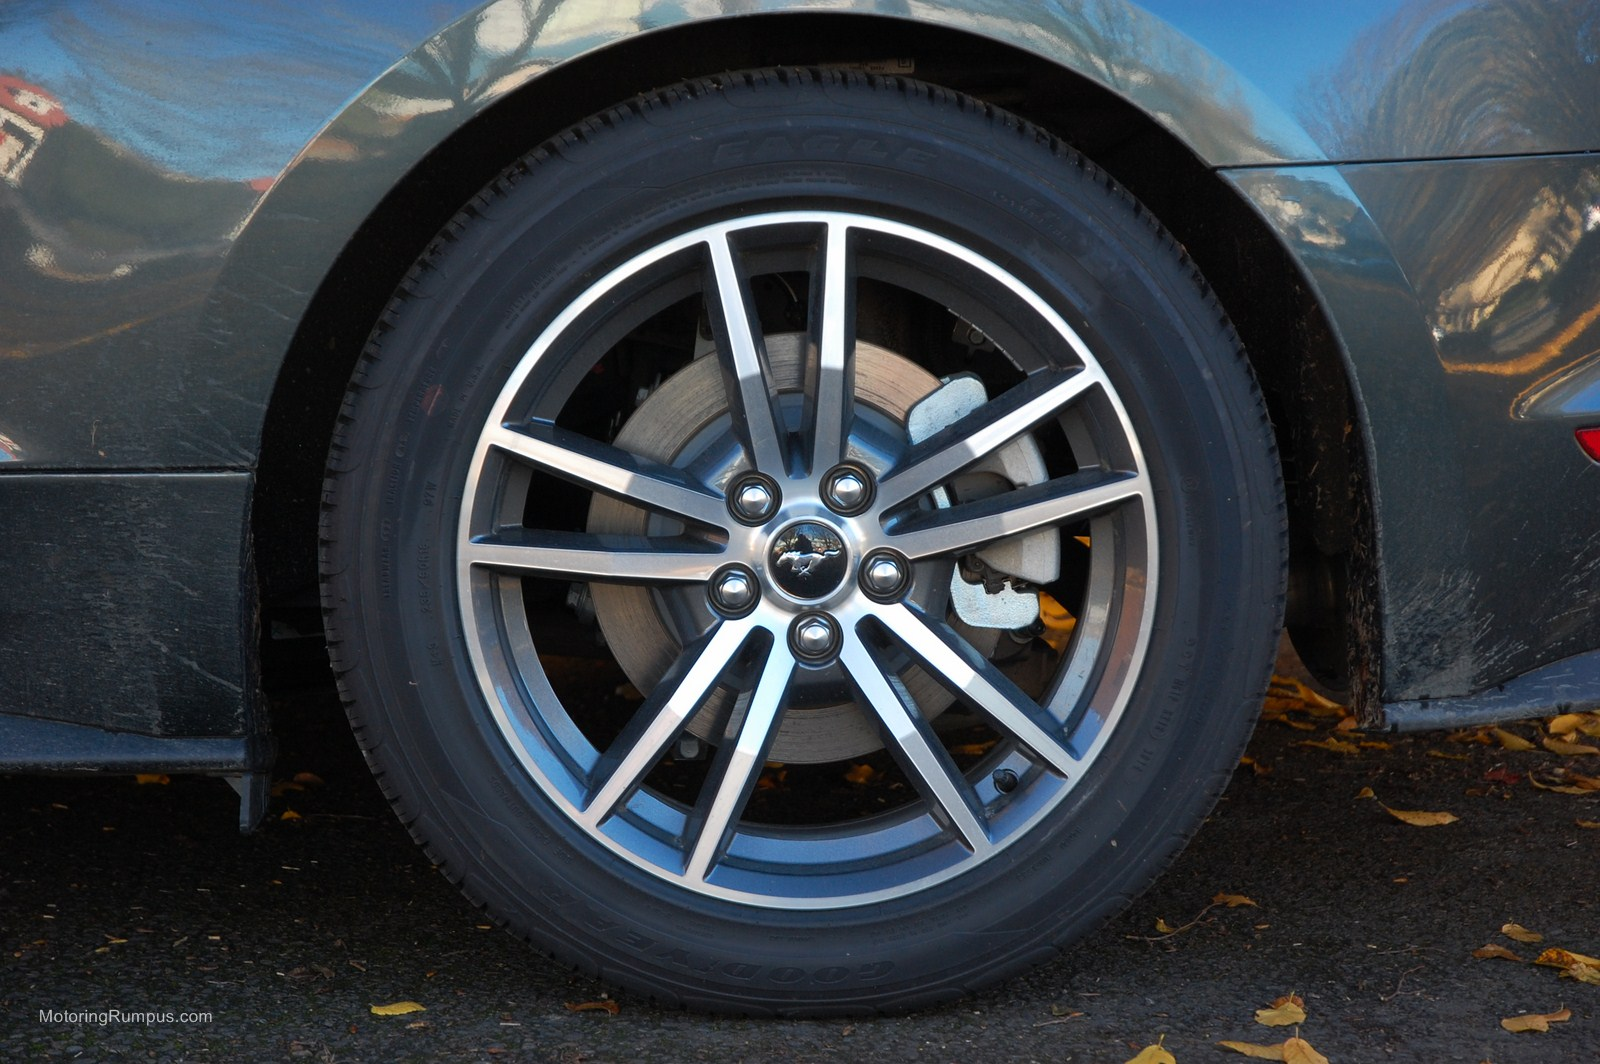 2015 Ford Mustang 18-inch Magnetic Gloss Wheels